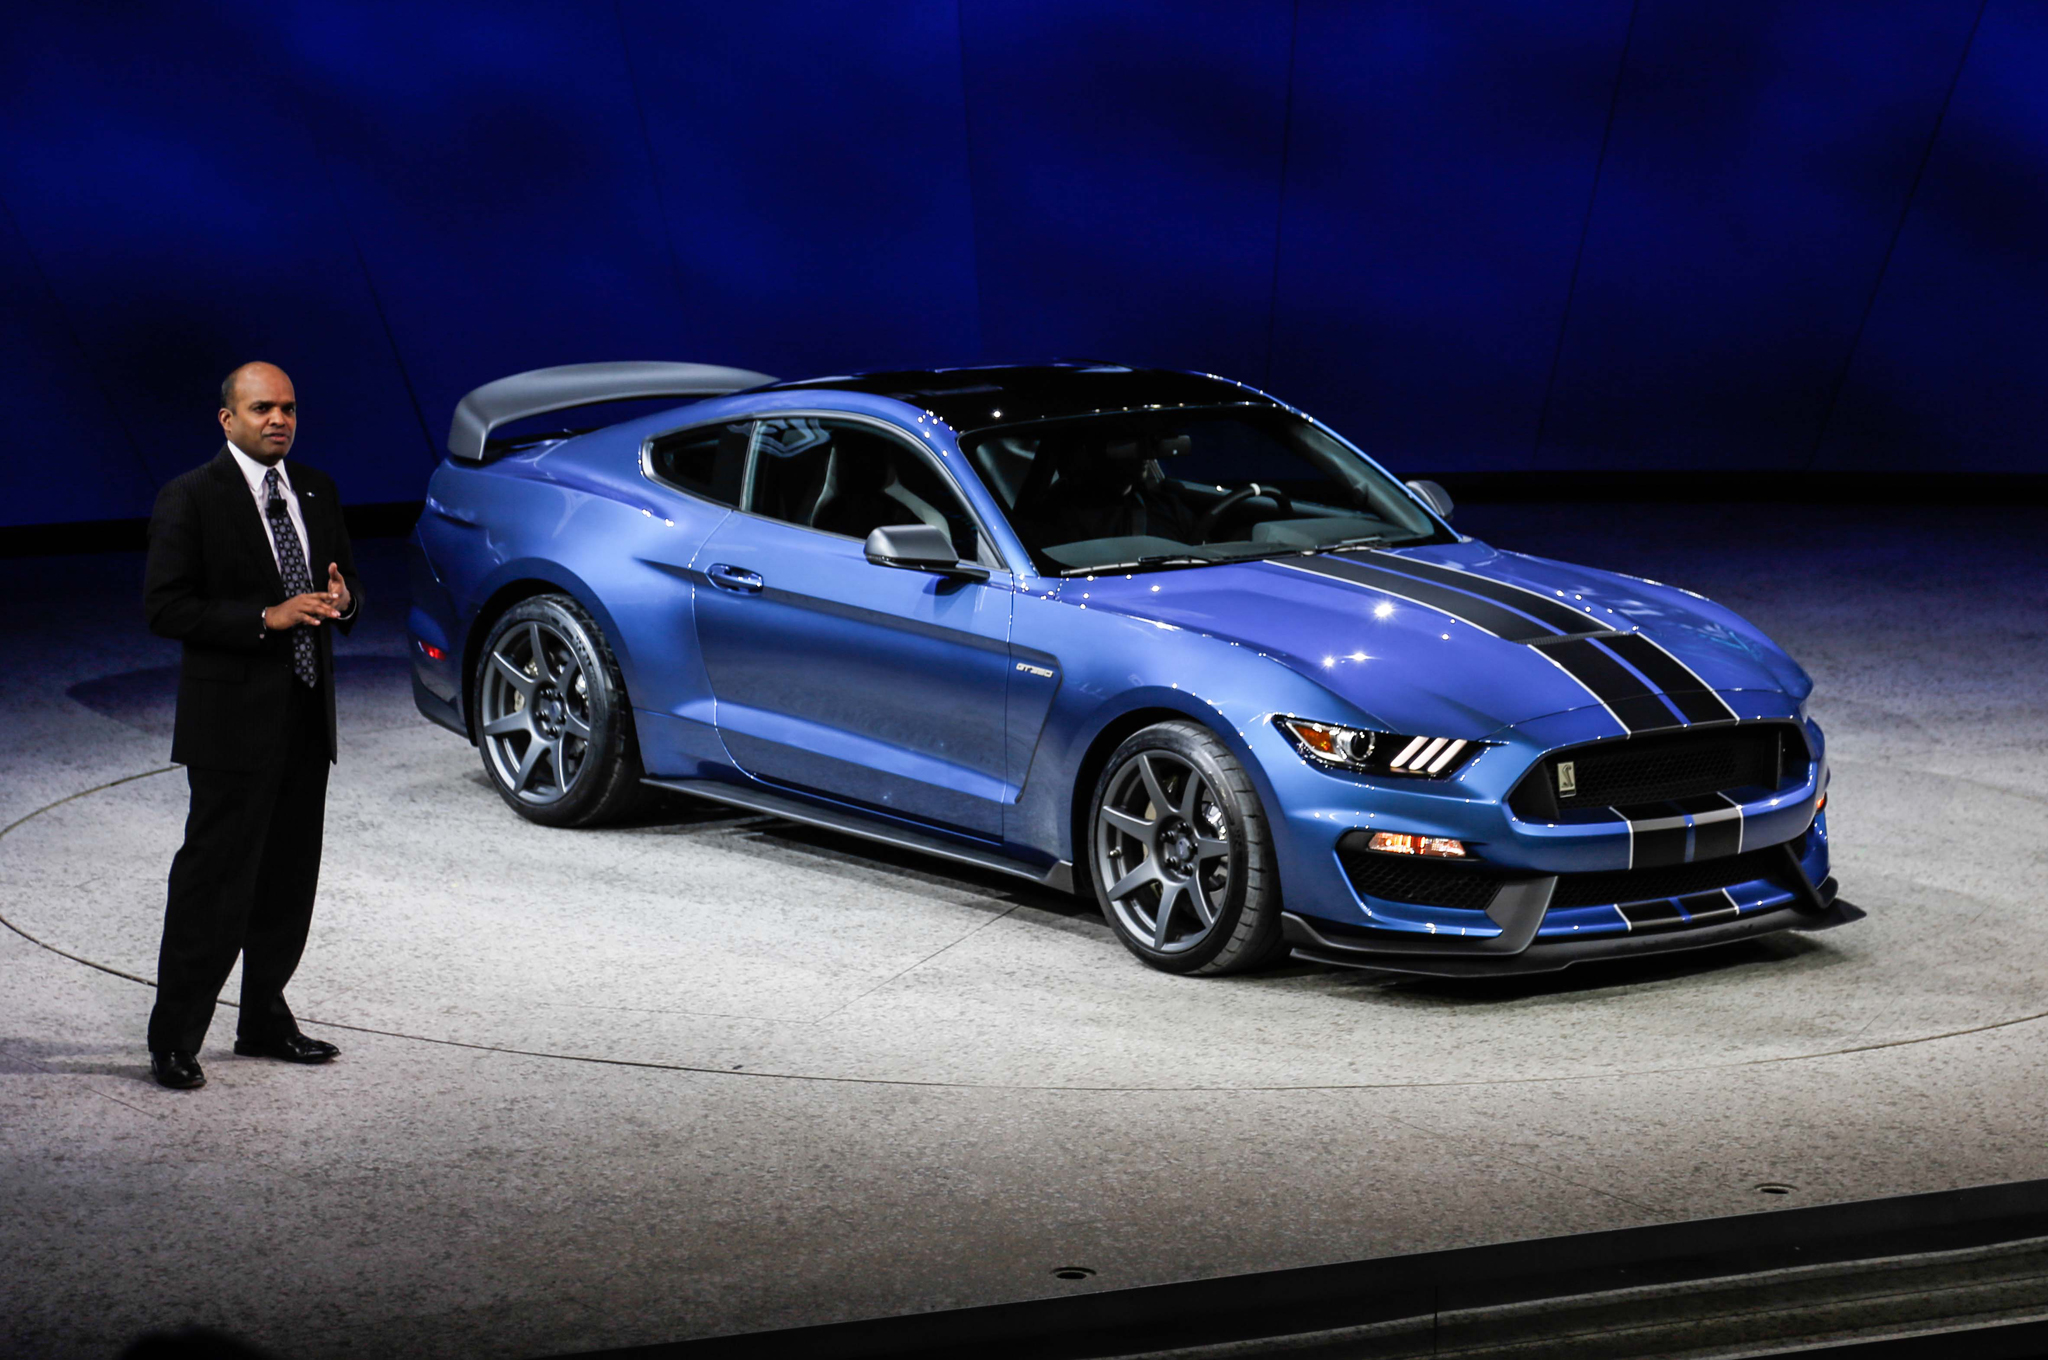 Ford Mustang Shelby Gt350r Presenting The All New 2016 Ford Shelby Gt350r Mustang